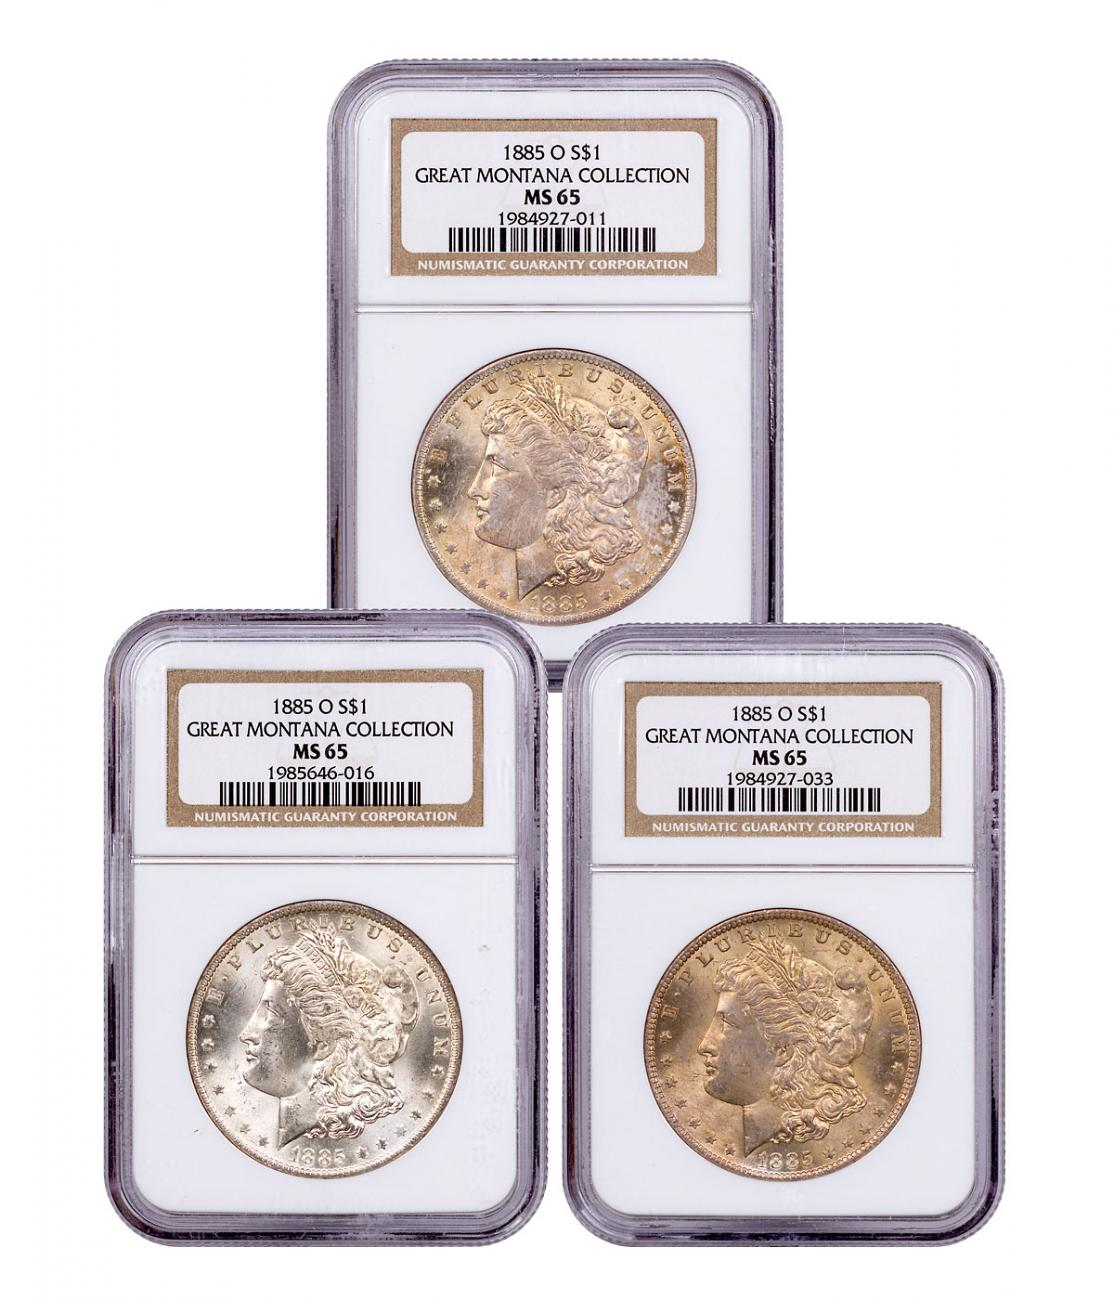 3-Coin Set - 1885-O Morgan Silver Dollar From the Great Montana Collection NGC MS65 Toned CPCR 7011